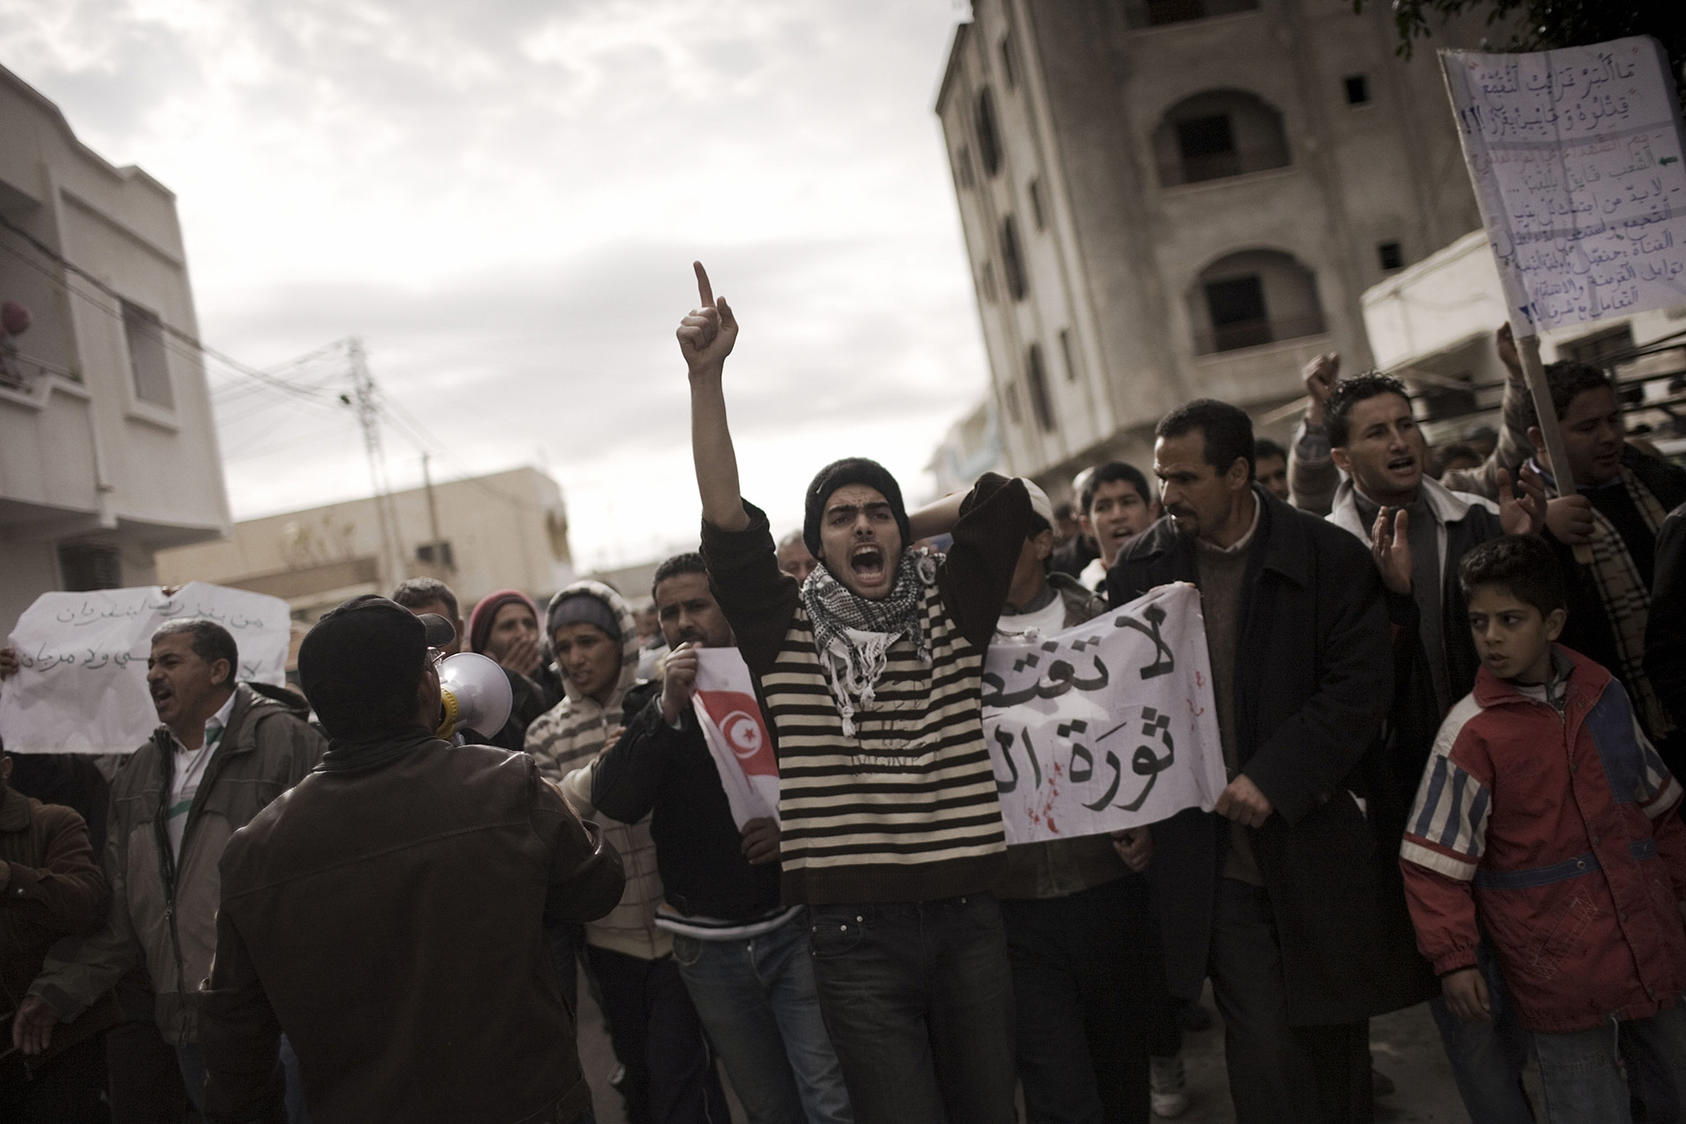 Protesters chant slogans against the political party of ousted President Zine el-Abedine Ben Ali in Sidi Bouzid, Tunisia, on Jan. 21, 2011. (Moises Saman/The New York Times)